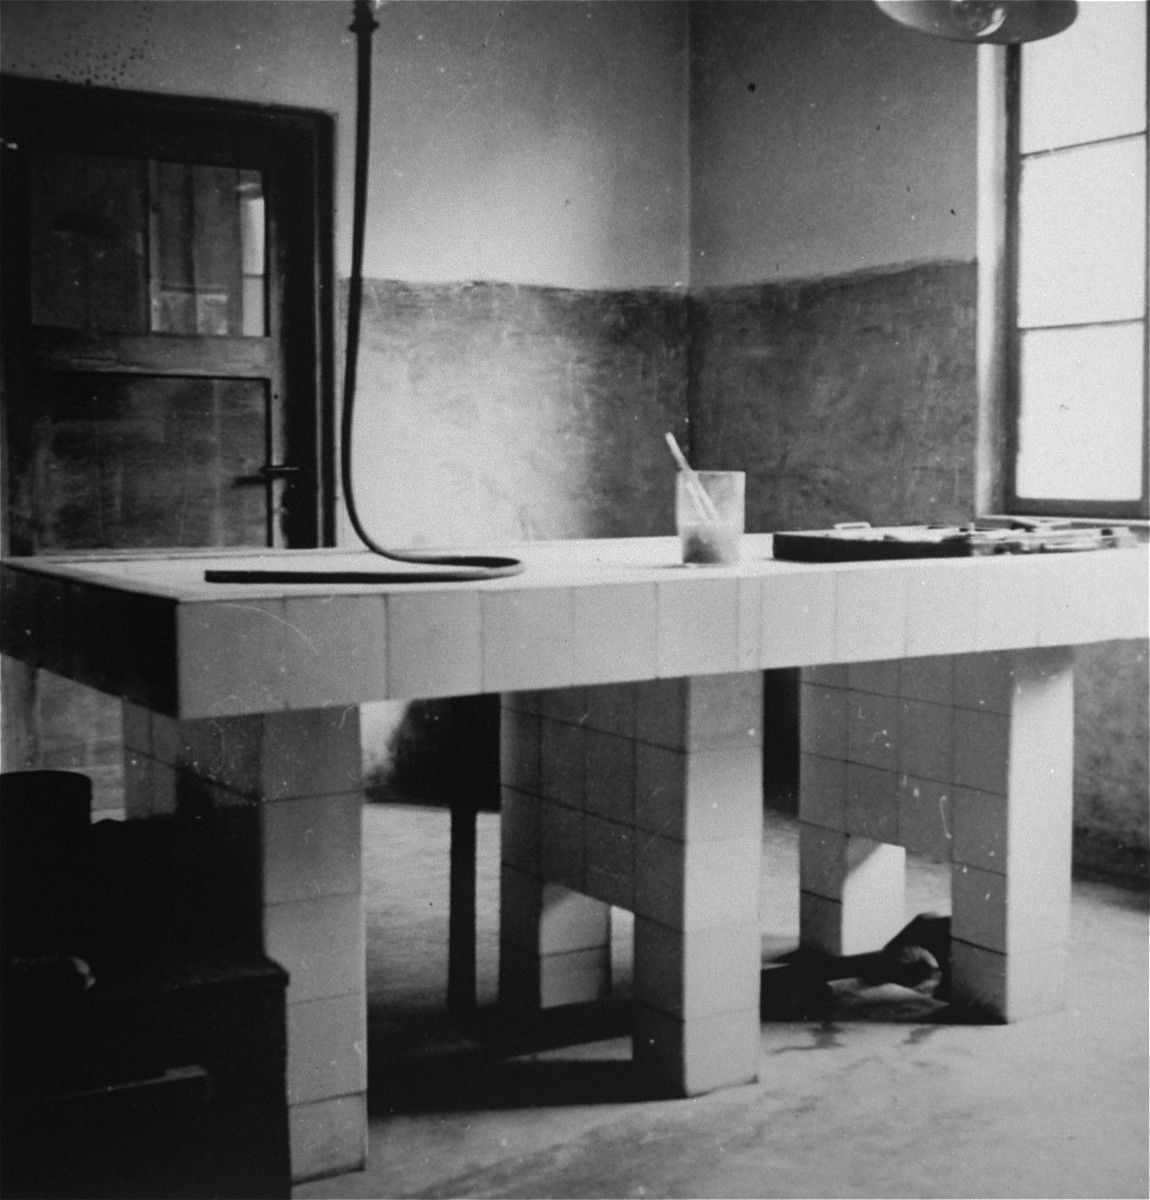 An operating or disecting table in the Ebensee concentration camp.